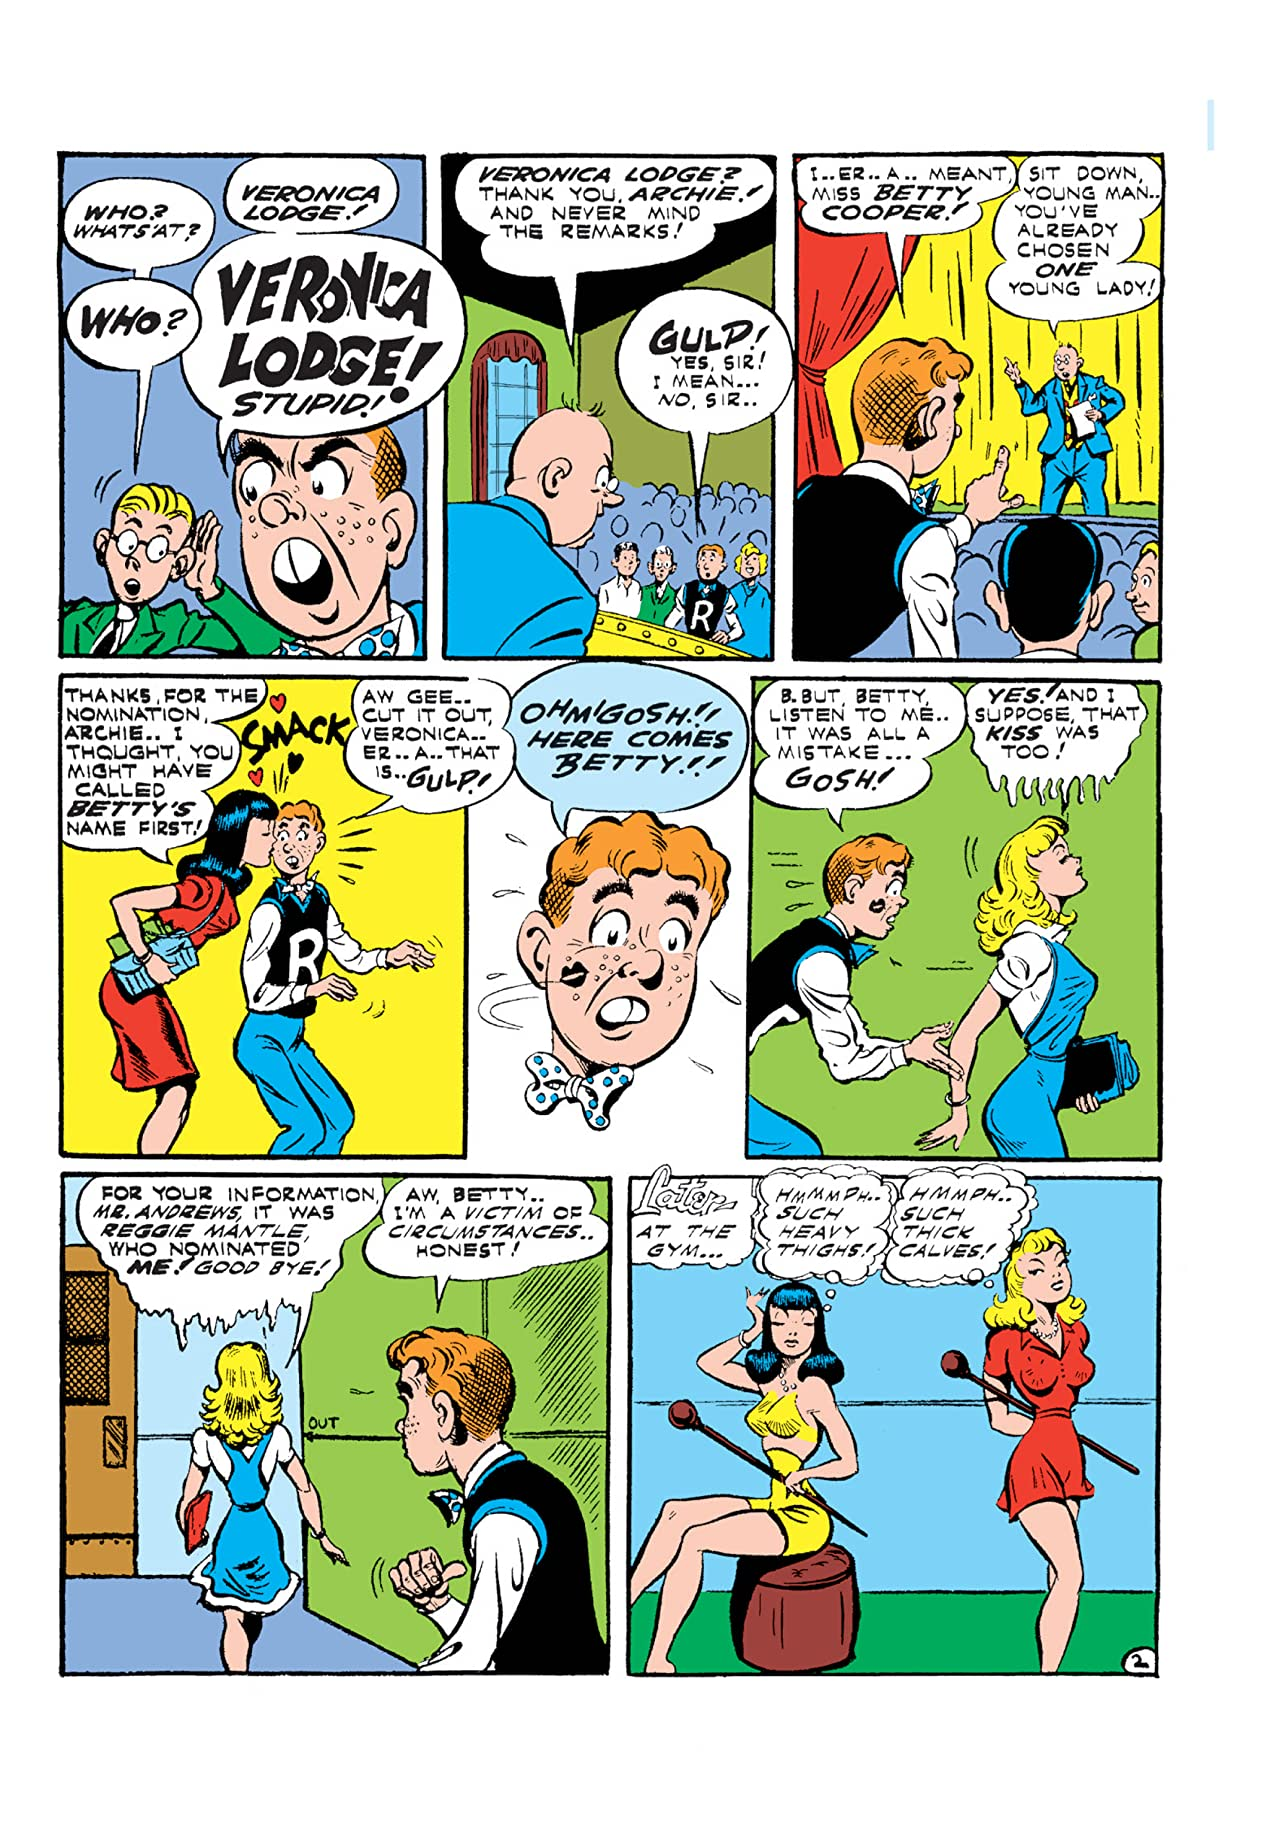 The Best of Archie Comics: Betty & Veronica Vol. 2